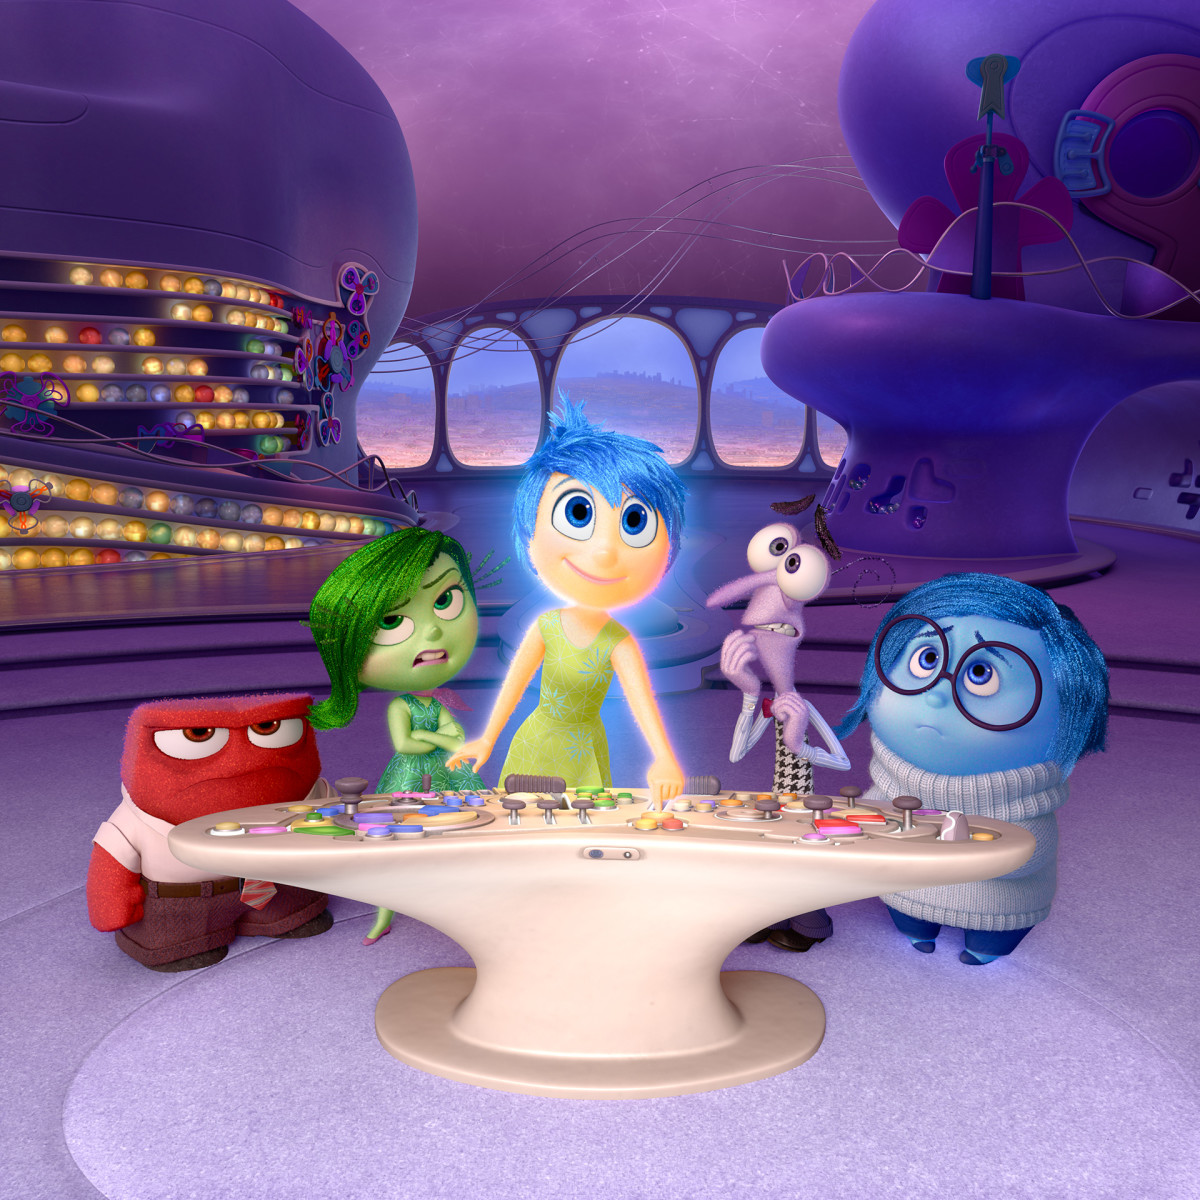 A still from Inside Out. (Photo: Pixar)